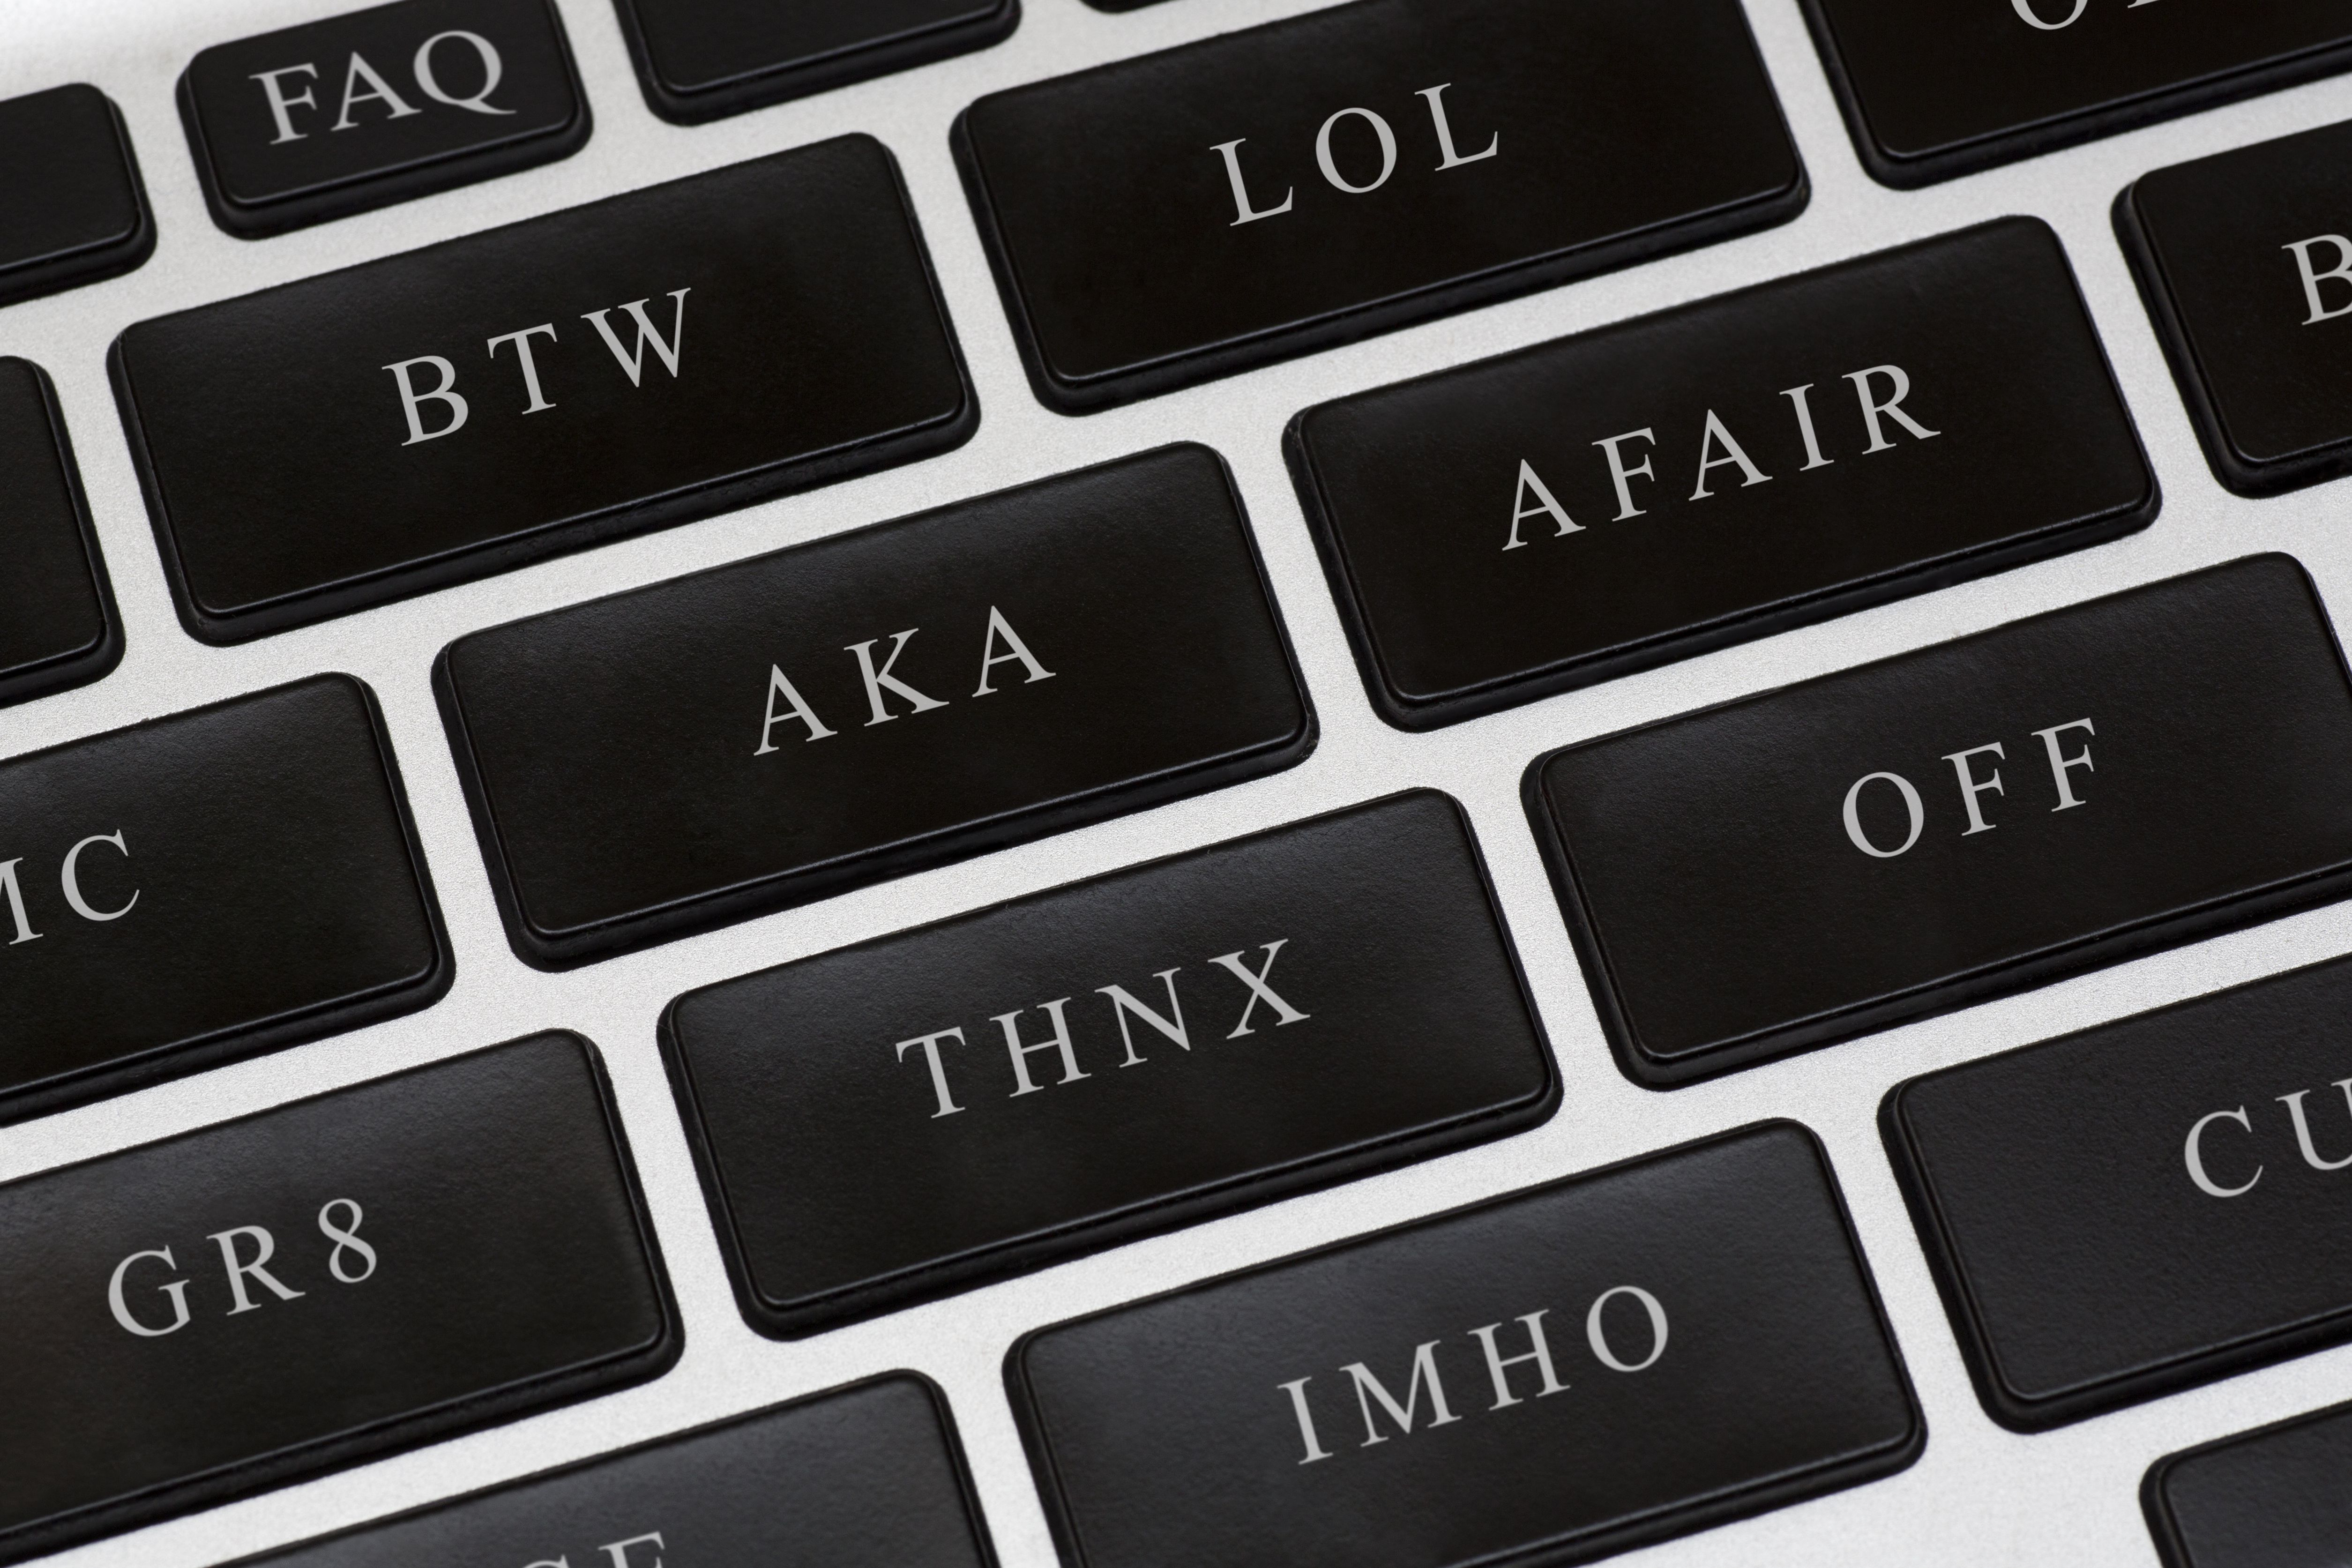 How to Use Spell Check for Yahoo Mail  How to Use Spel...